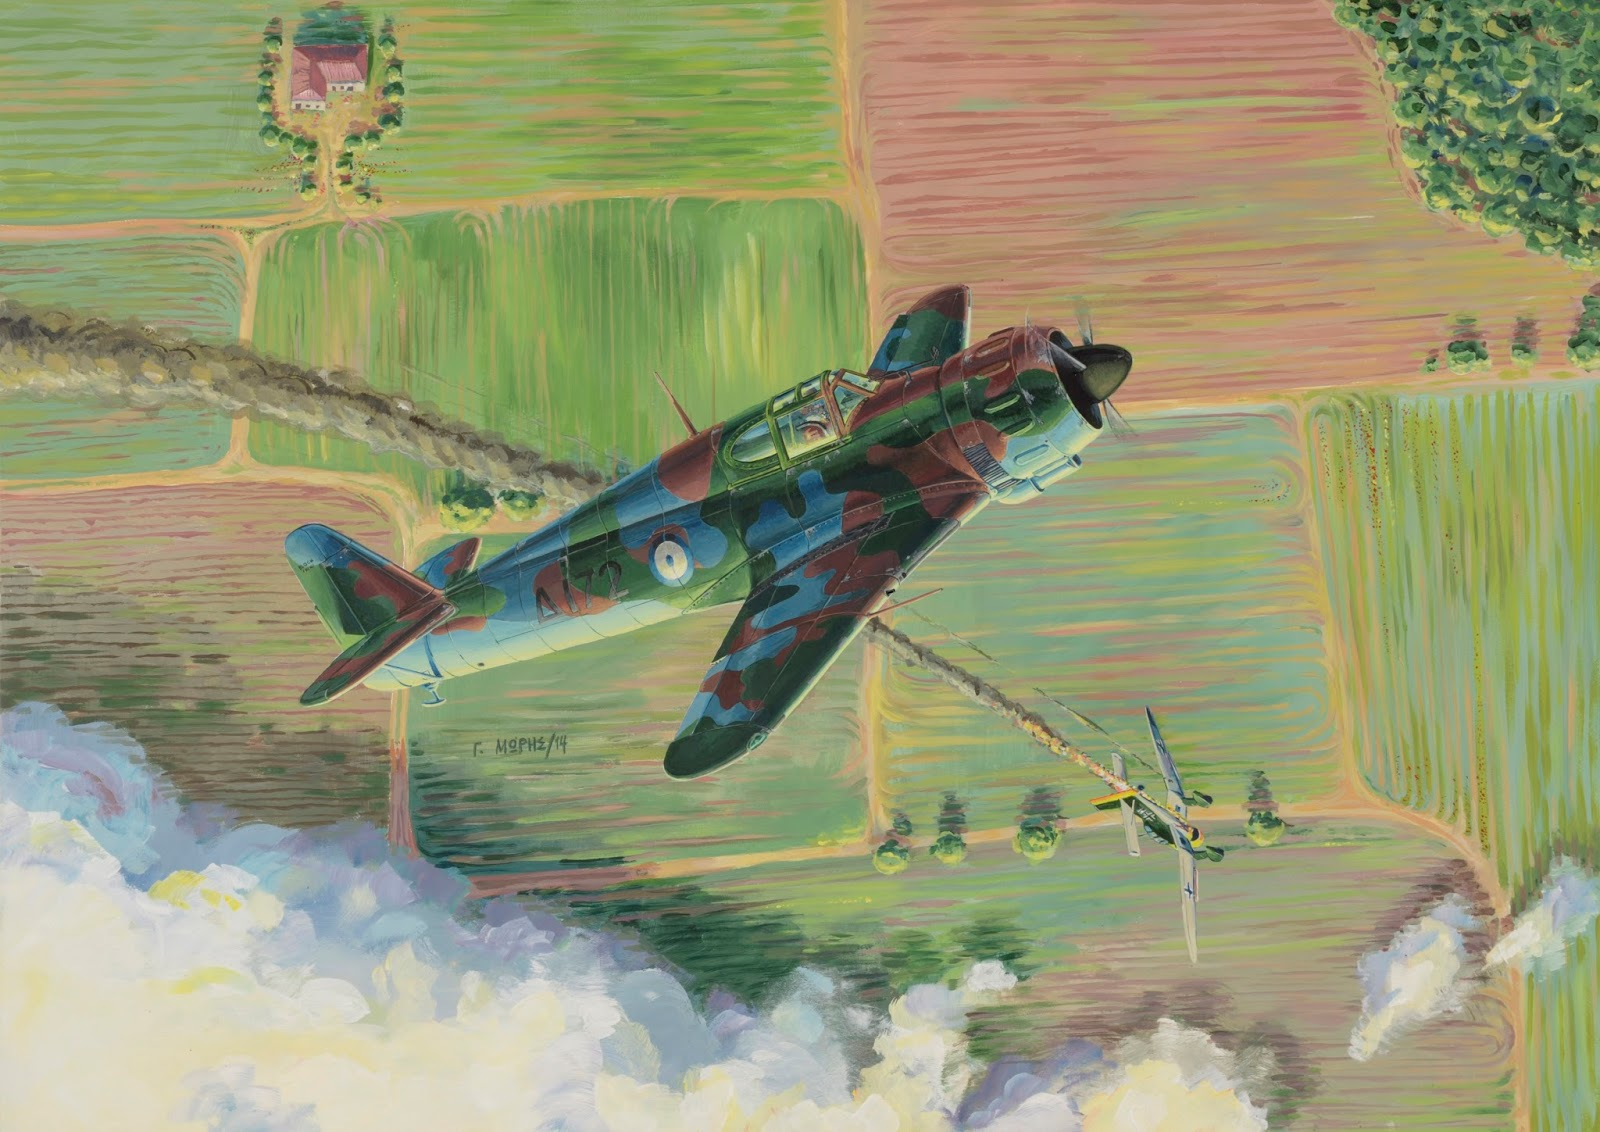 An impressive painting by talented aviation artist George Moris, depicting the last dogfight of the Royal Hellenic Air Force vs the Luftwaffe